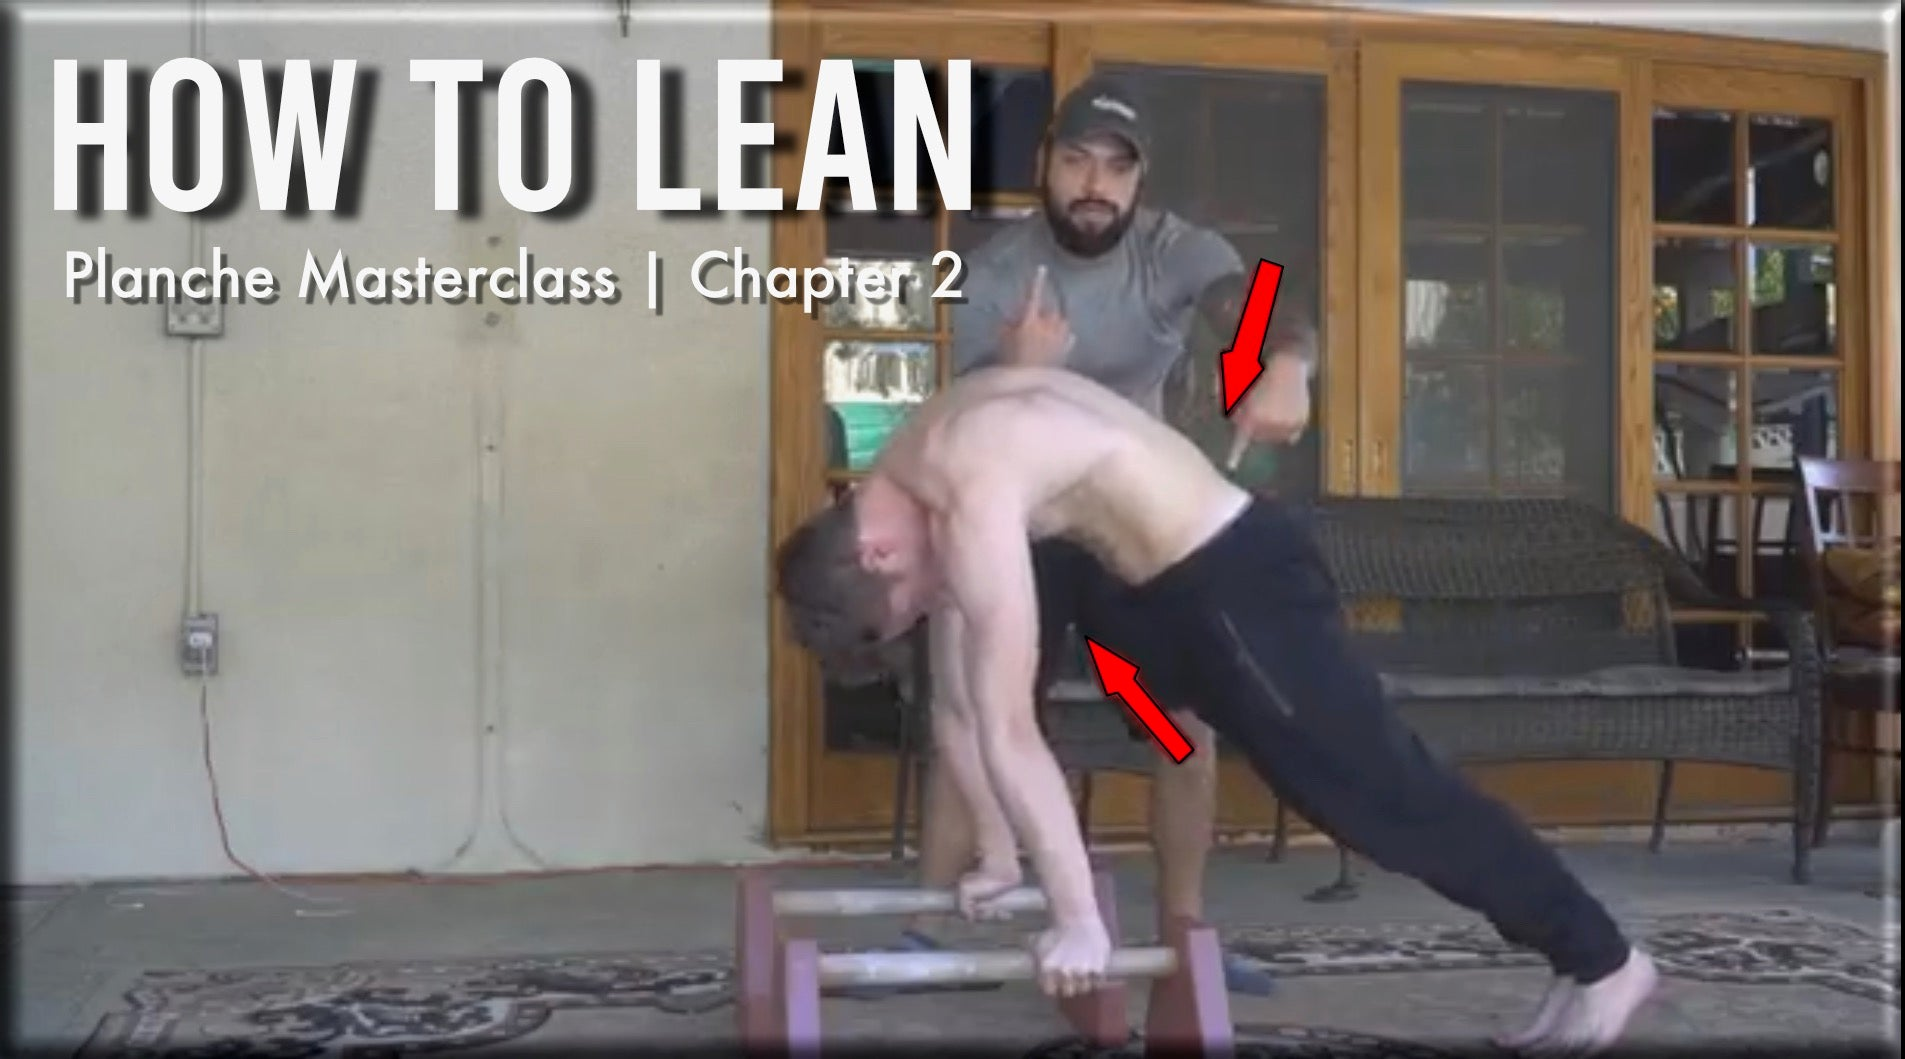 Planche Masterclass Chapter 2